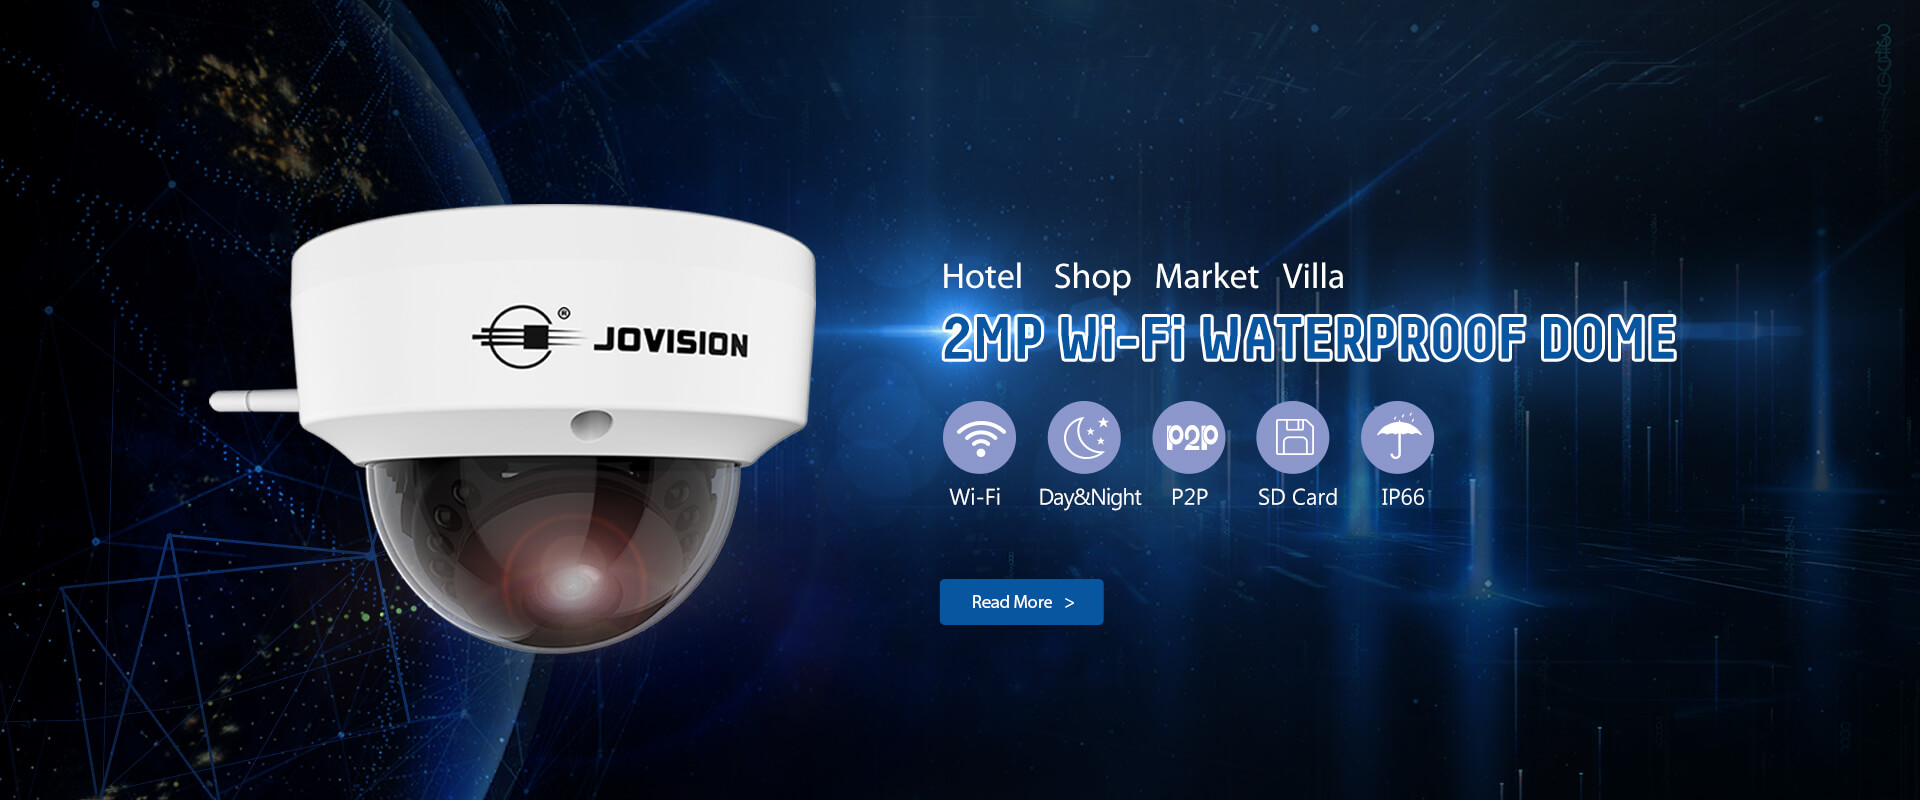 JVS-N3622-WF 2.0MP Fandaalske Proof Wi-Fi Dome Kamera